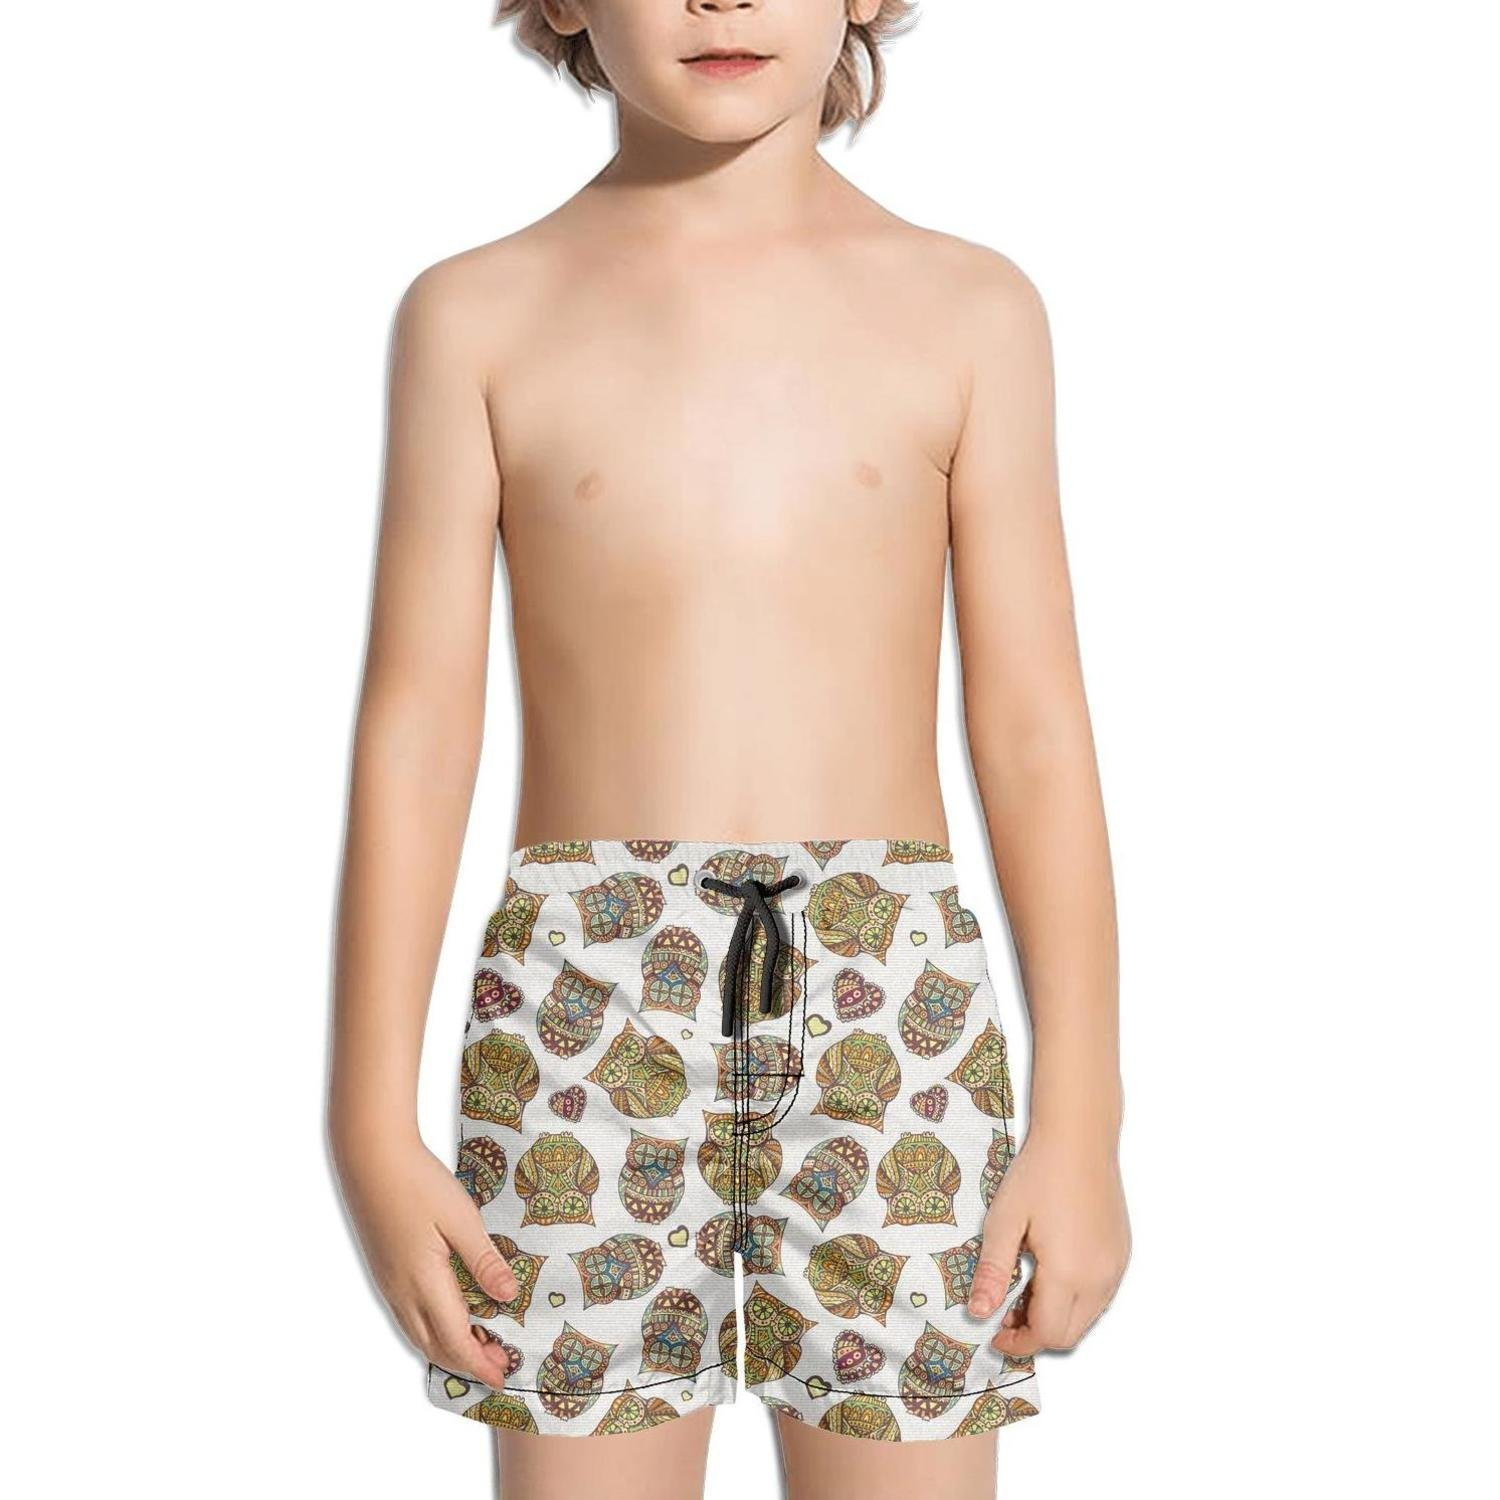 Cute Vintage Barred owl Love Quick Dry Boys¡¯ Beach Board Shorts by truye rrelk (Image #1)